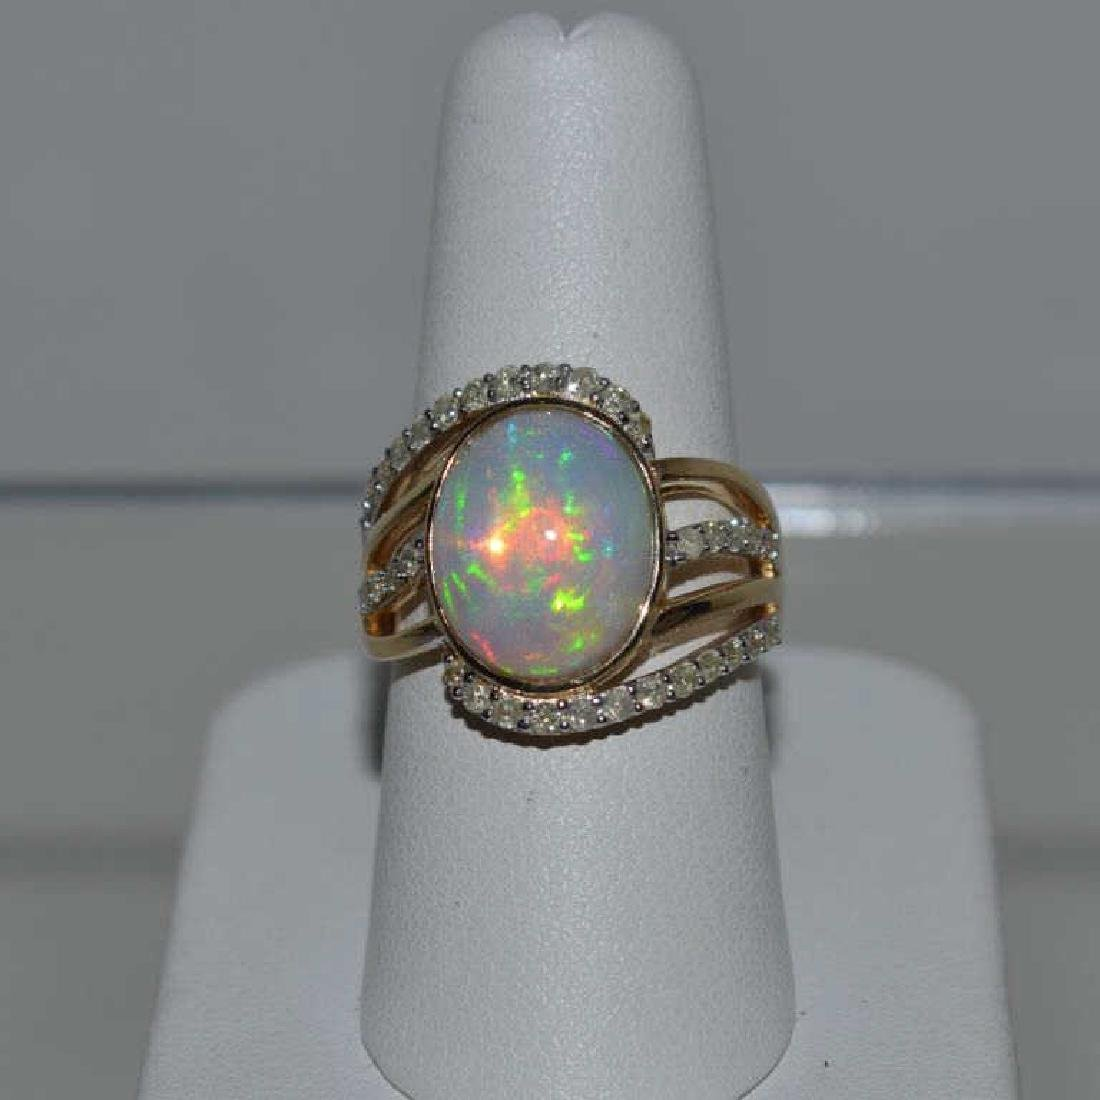 14kt yellow gold opal and diamond ring - 2